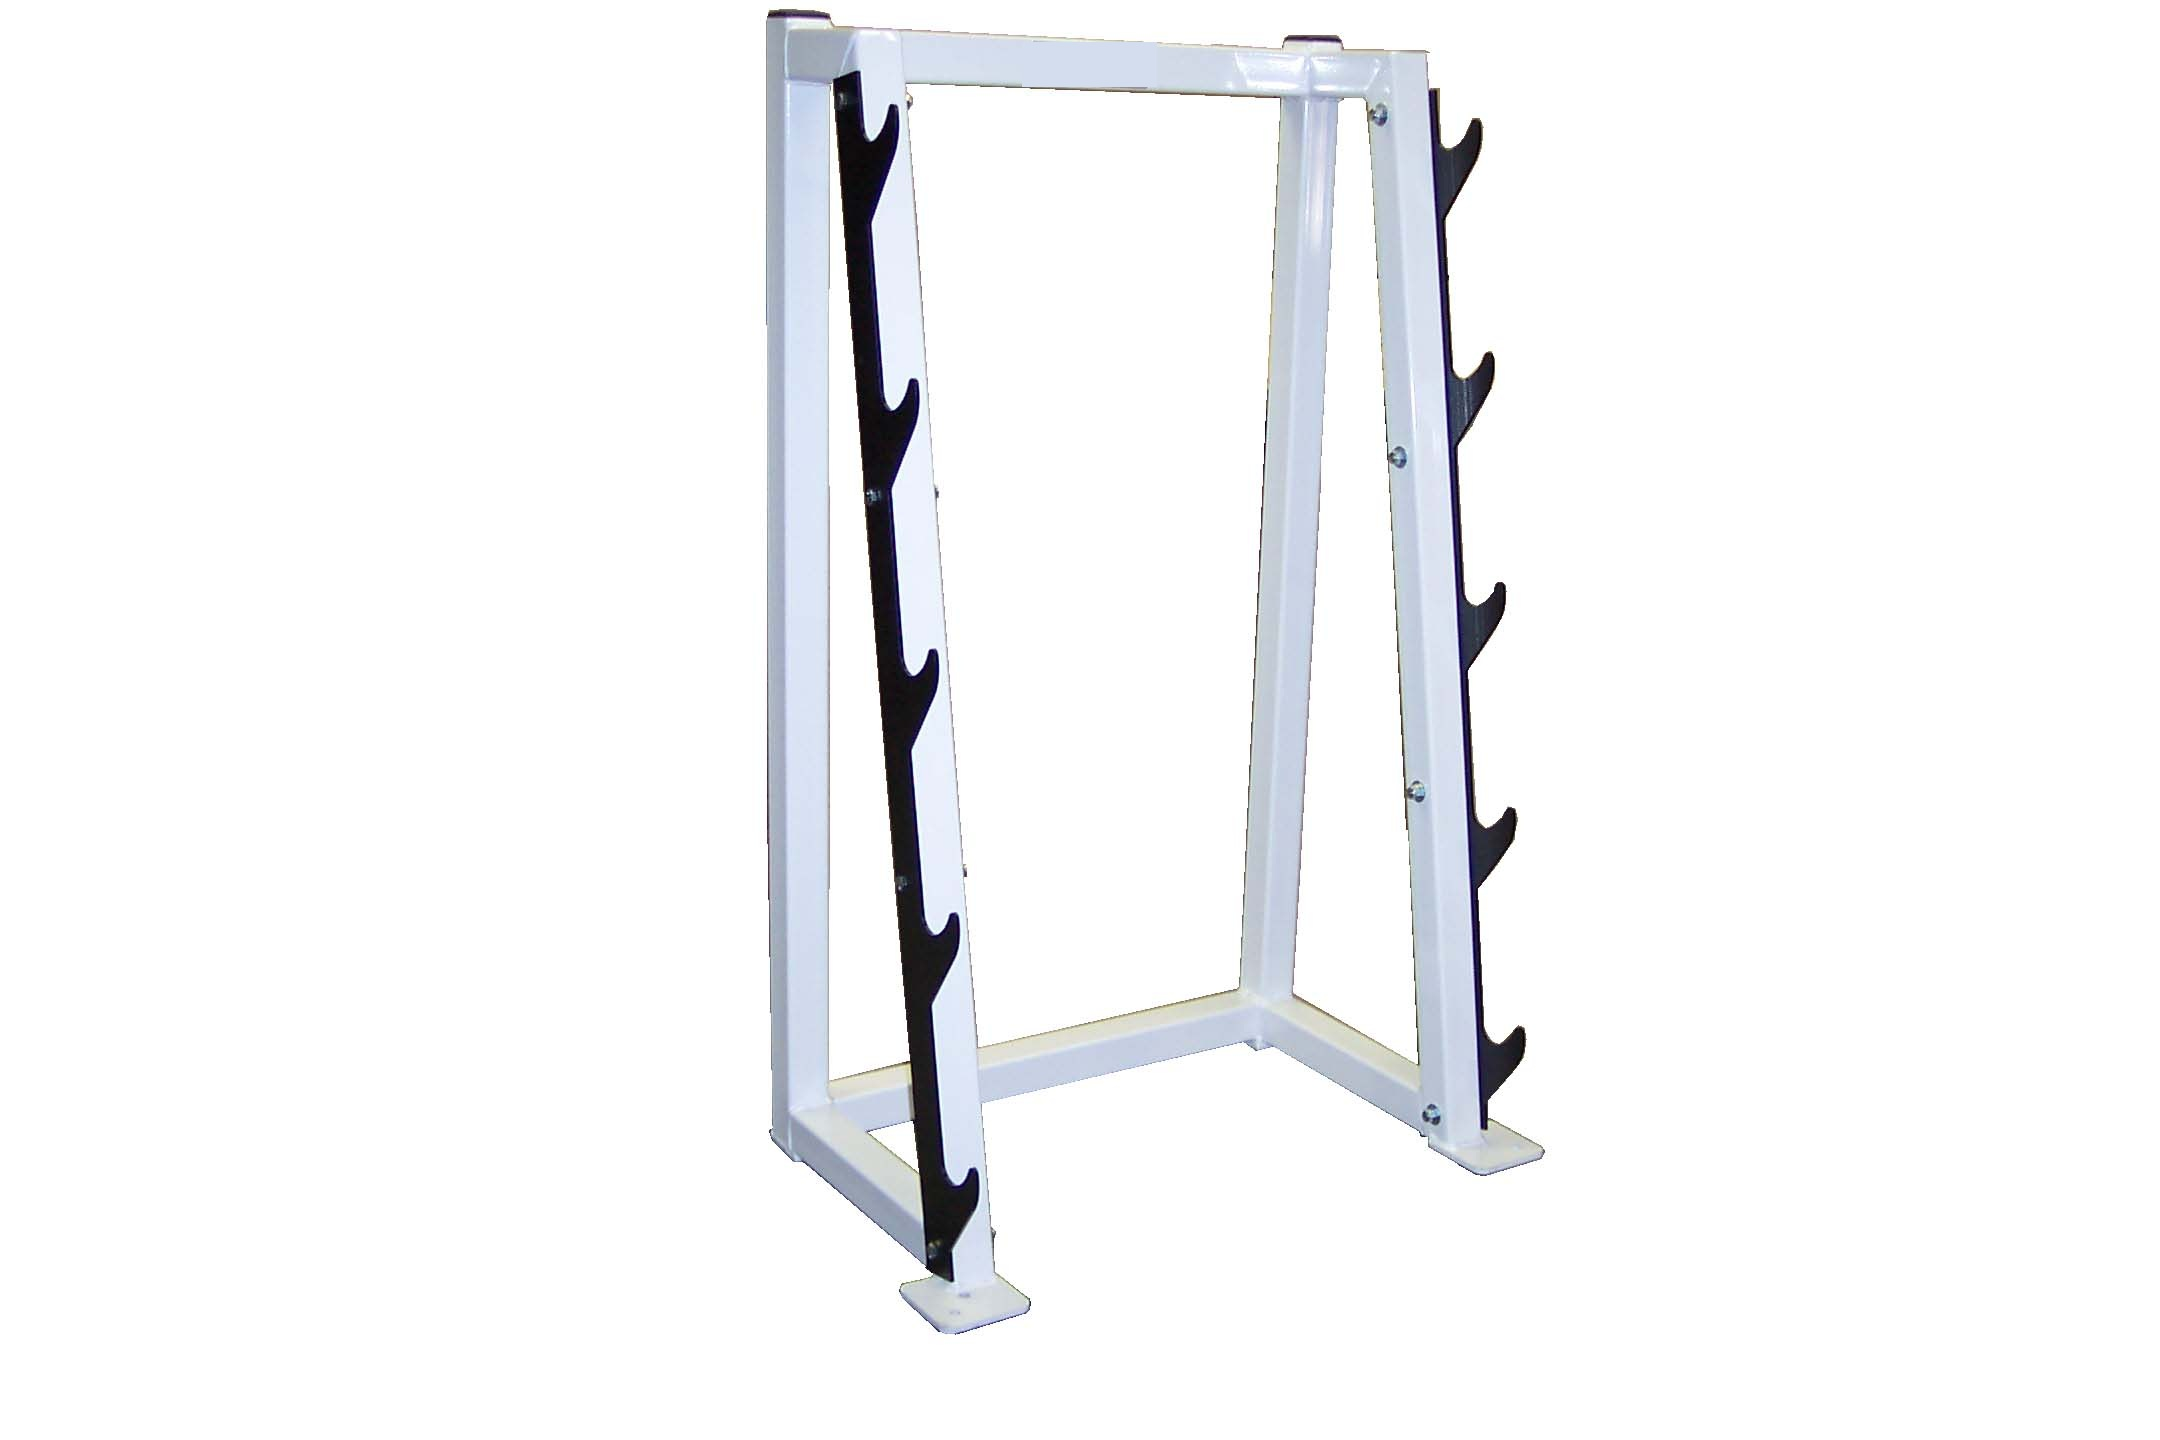 MAX#866 BARBELL RACK (5-BAR)